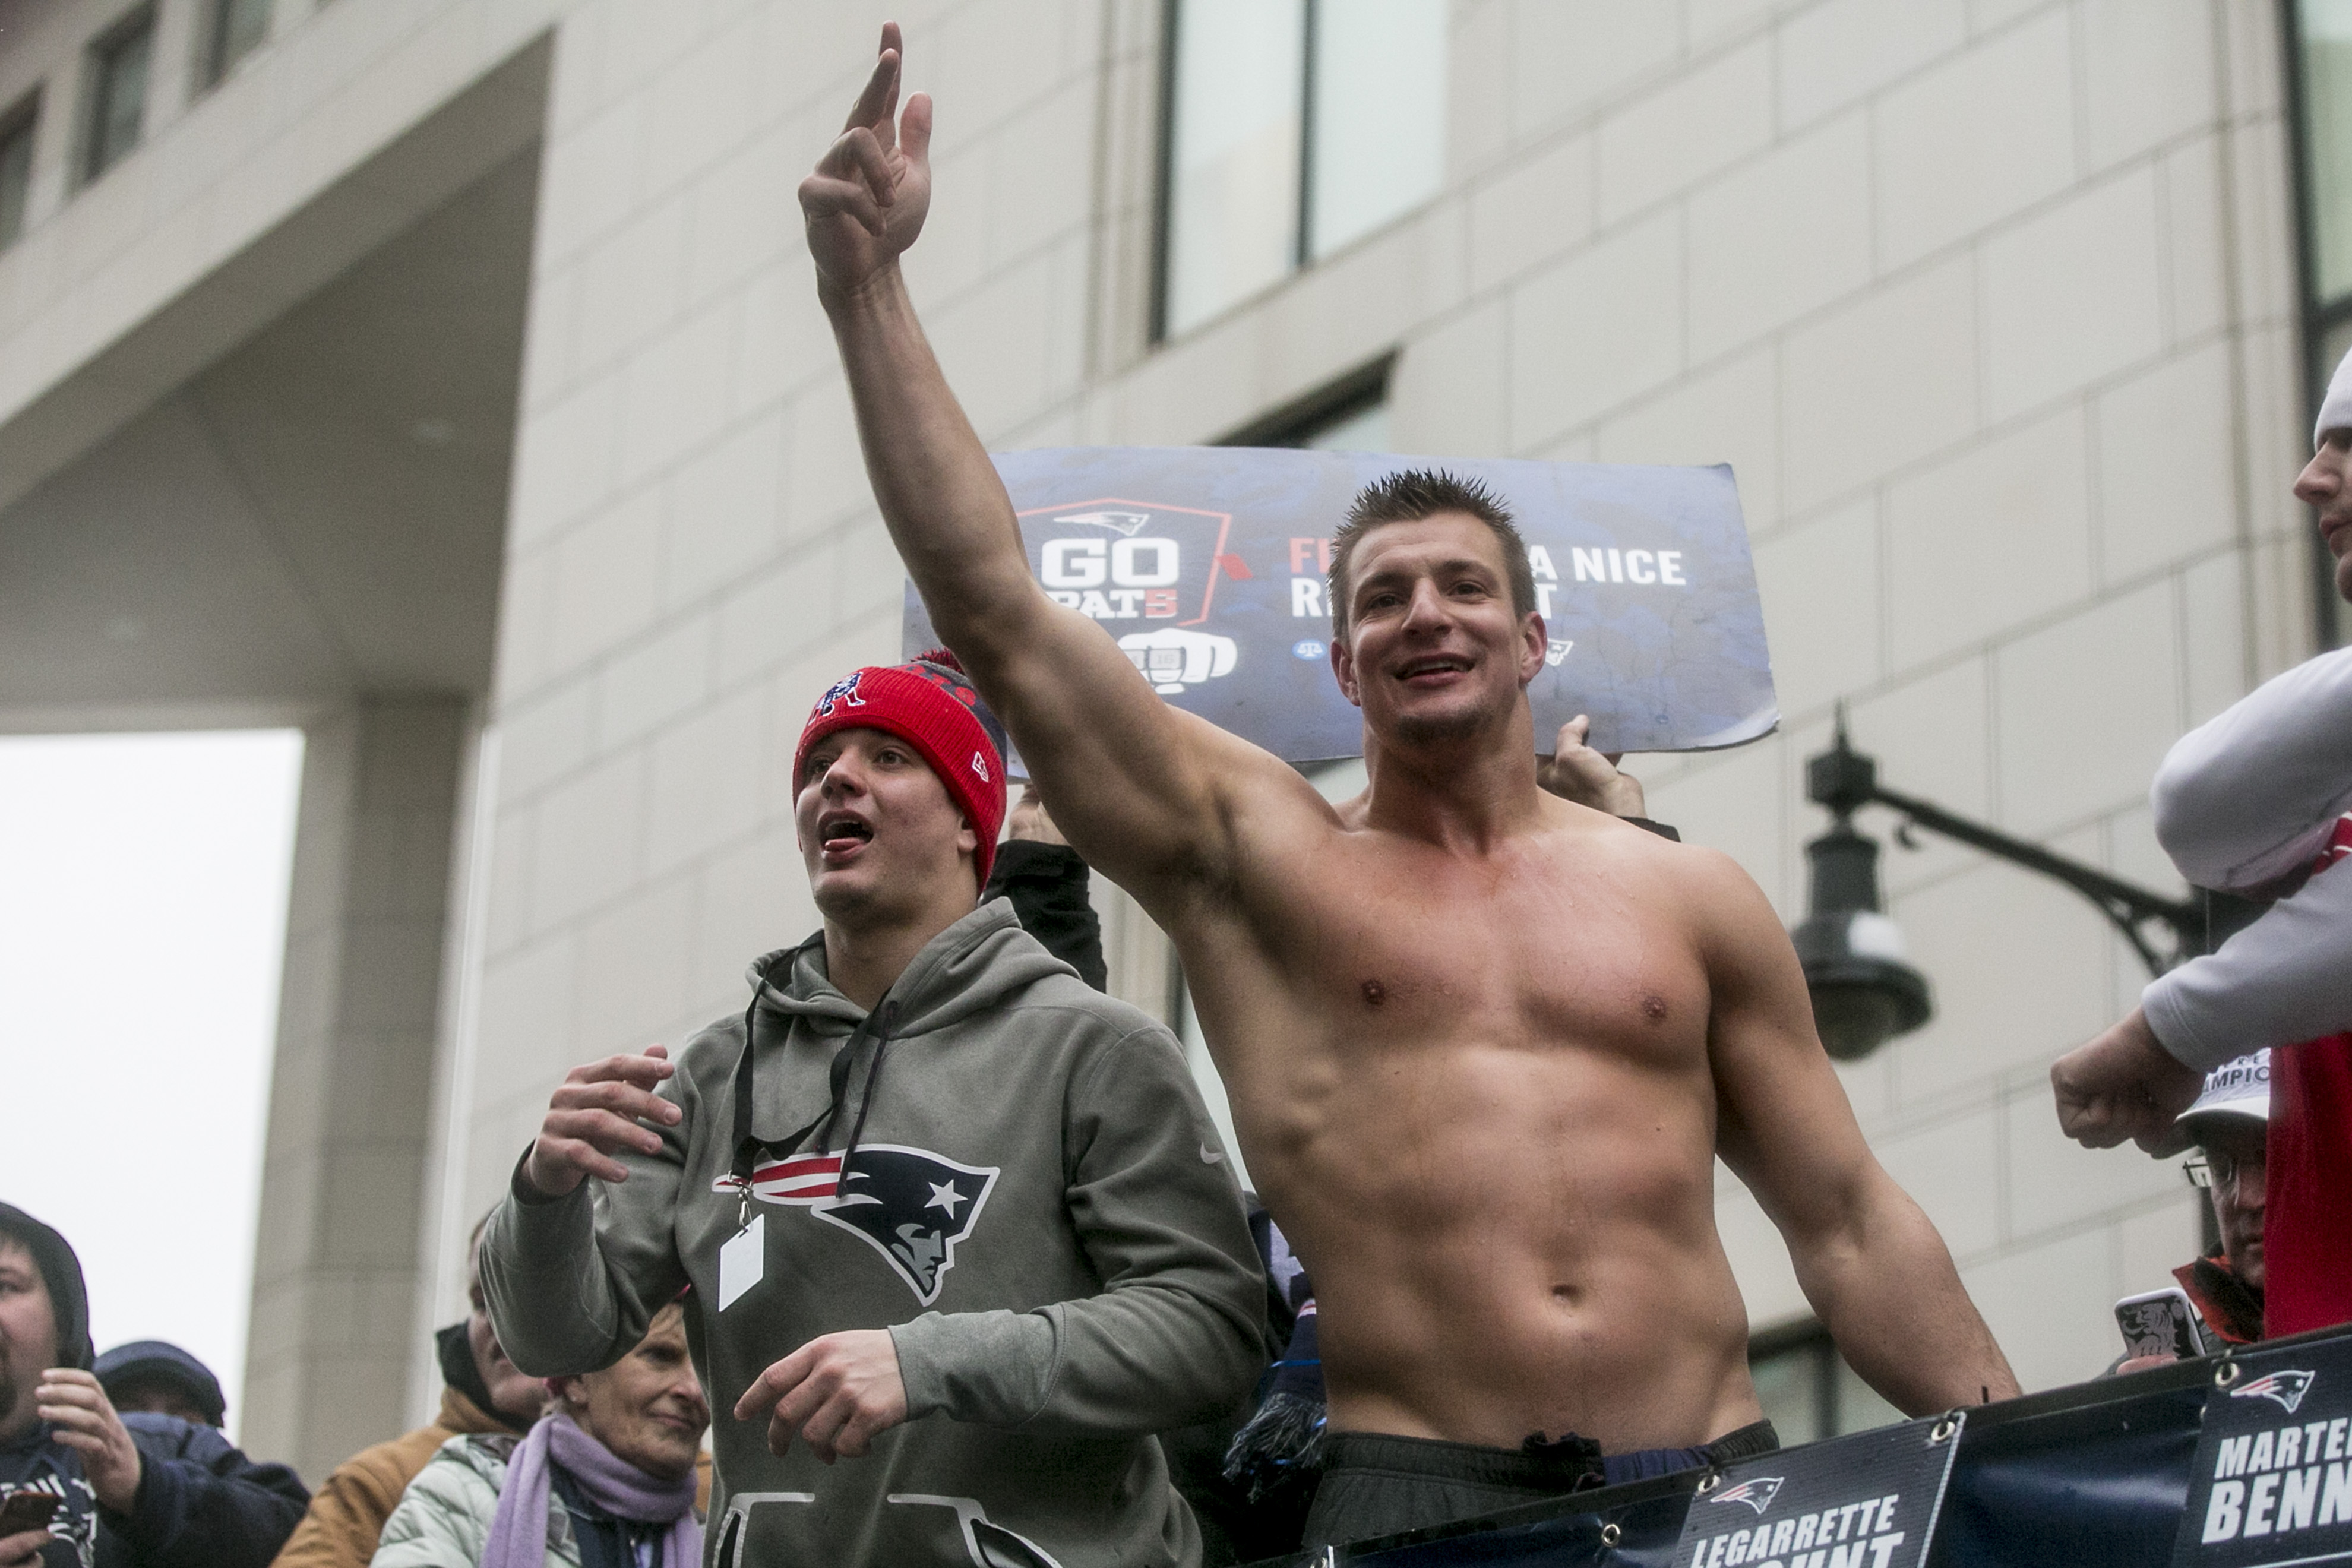 BOSTON, MA - FEBRUARY 07: Rob Gronkowski of the New England Patriots (R) celebrates during the Super Bowl victory parade on February 7, 2017 in Boston, Massachusetts. The Patriots defeated the Atlanta Falcons 34-28 in overtime in Super Bowl 51. (Photo by Billie Weiss/Getty Images)